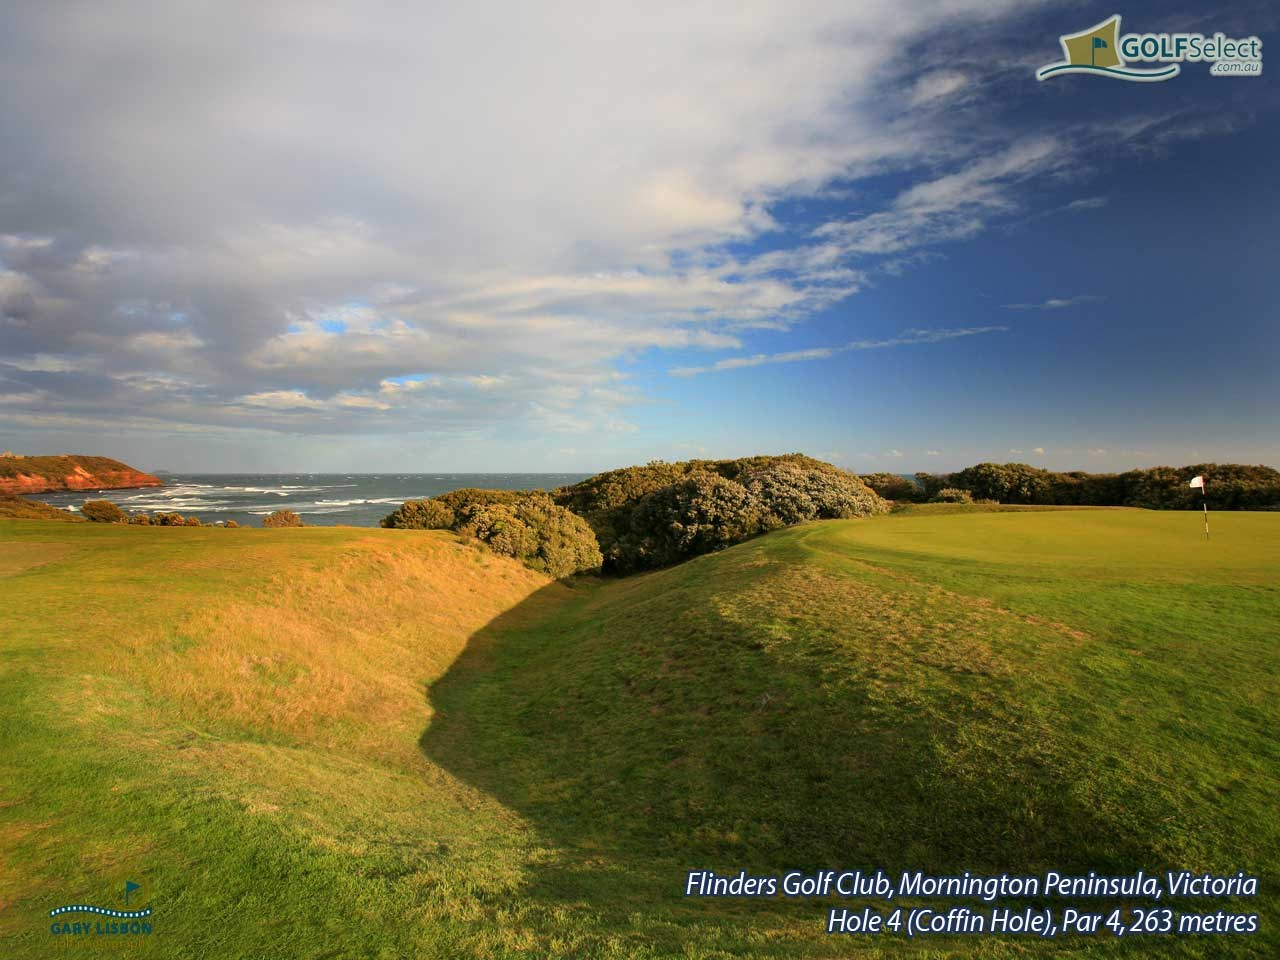 Flinders Golf Club Hole 4, Par 4, 263 metres